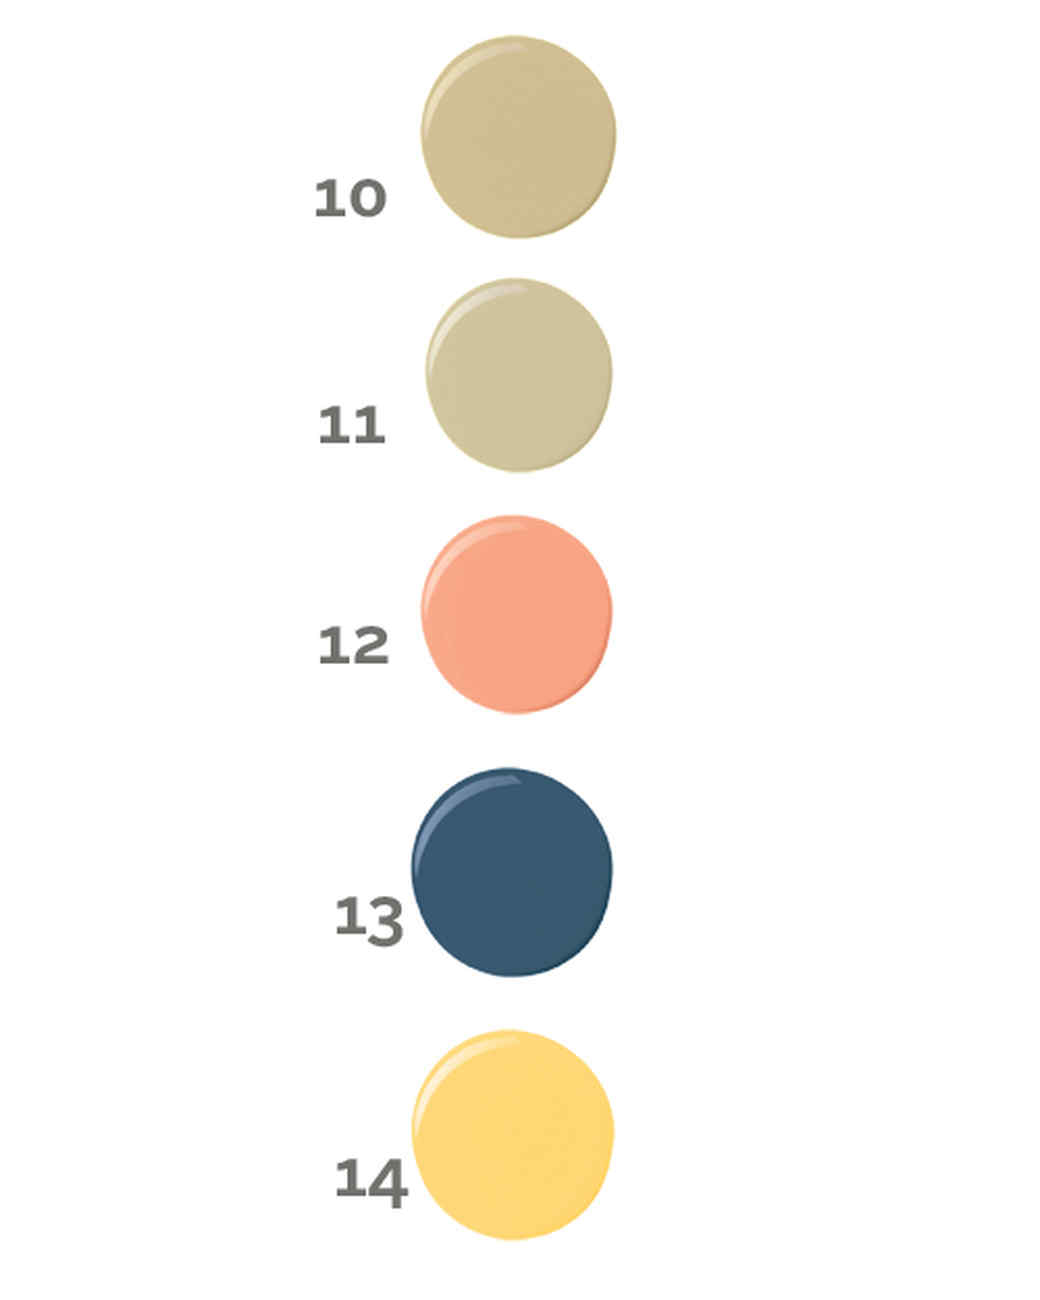 mld104784_0510_paint_swatches1.jpg